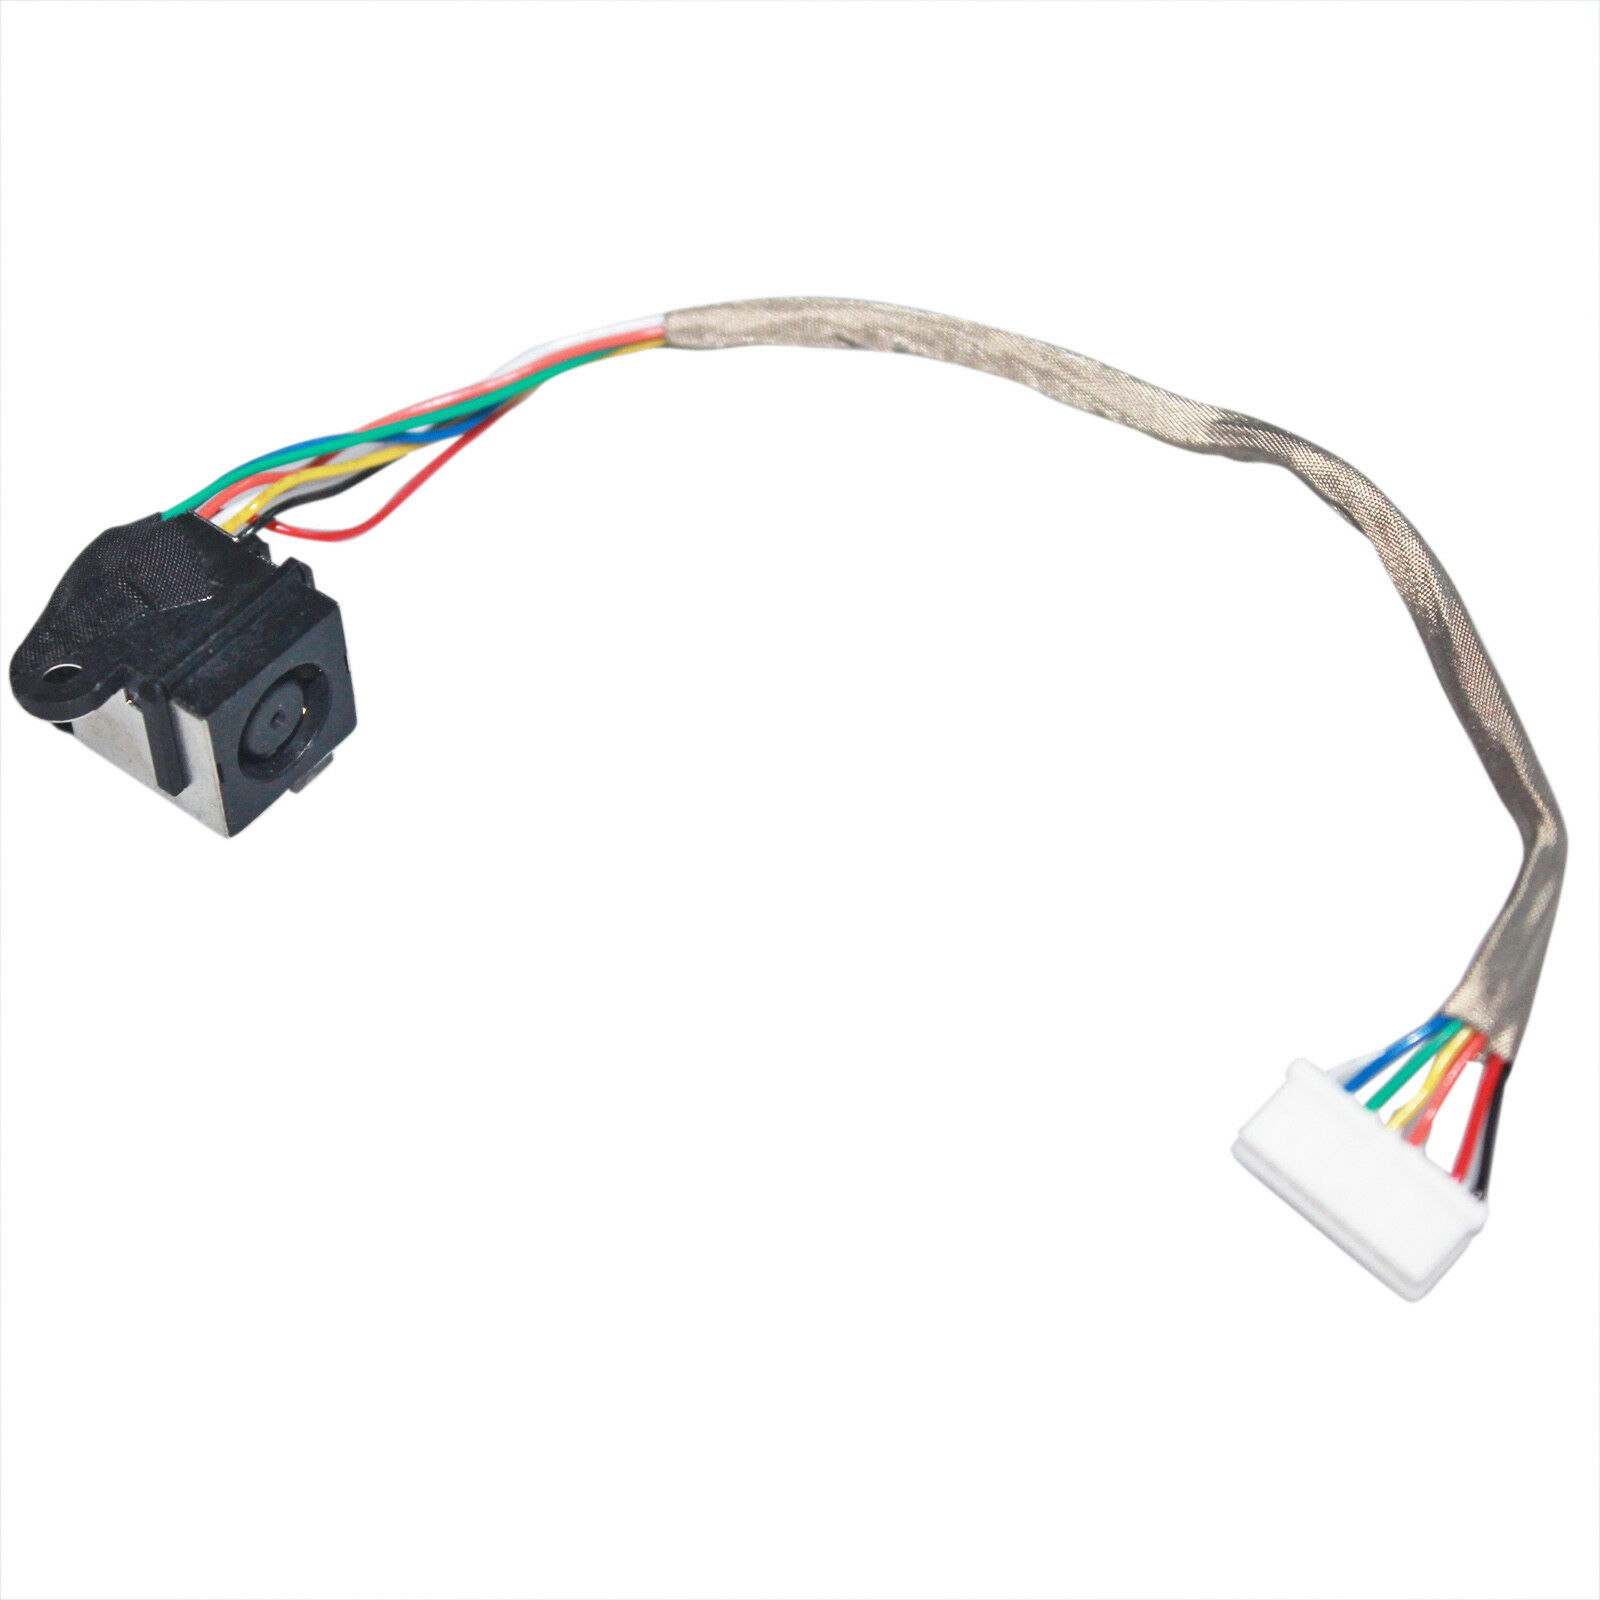 DC Power Jack Harness Plug in Cable for Dell Pp33l Pp39l | eBay